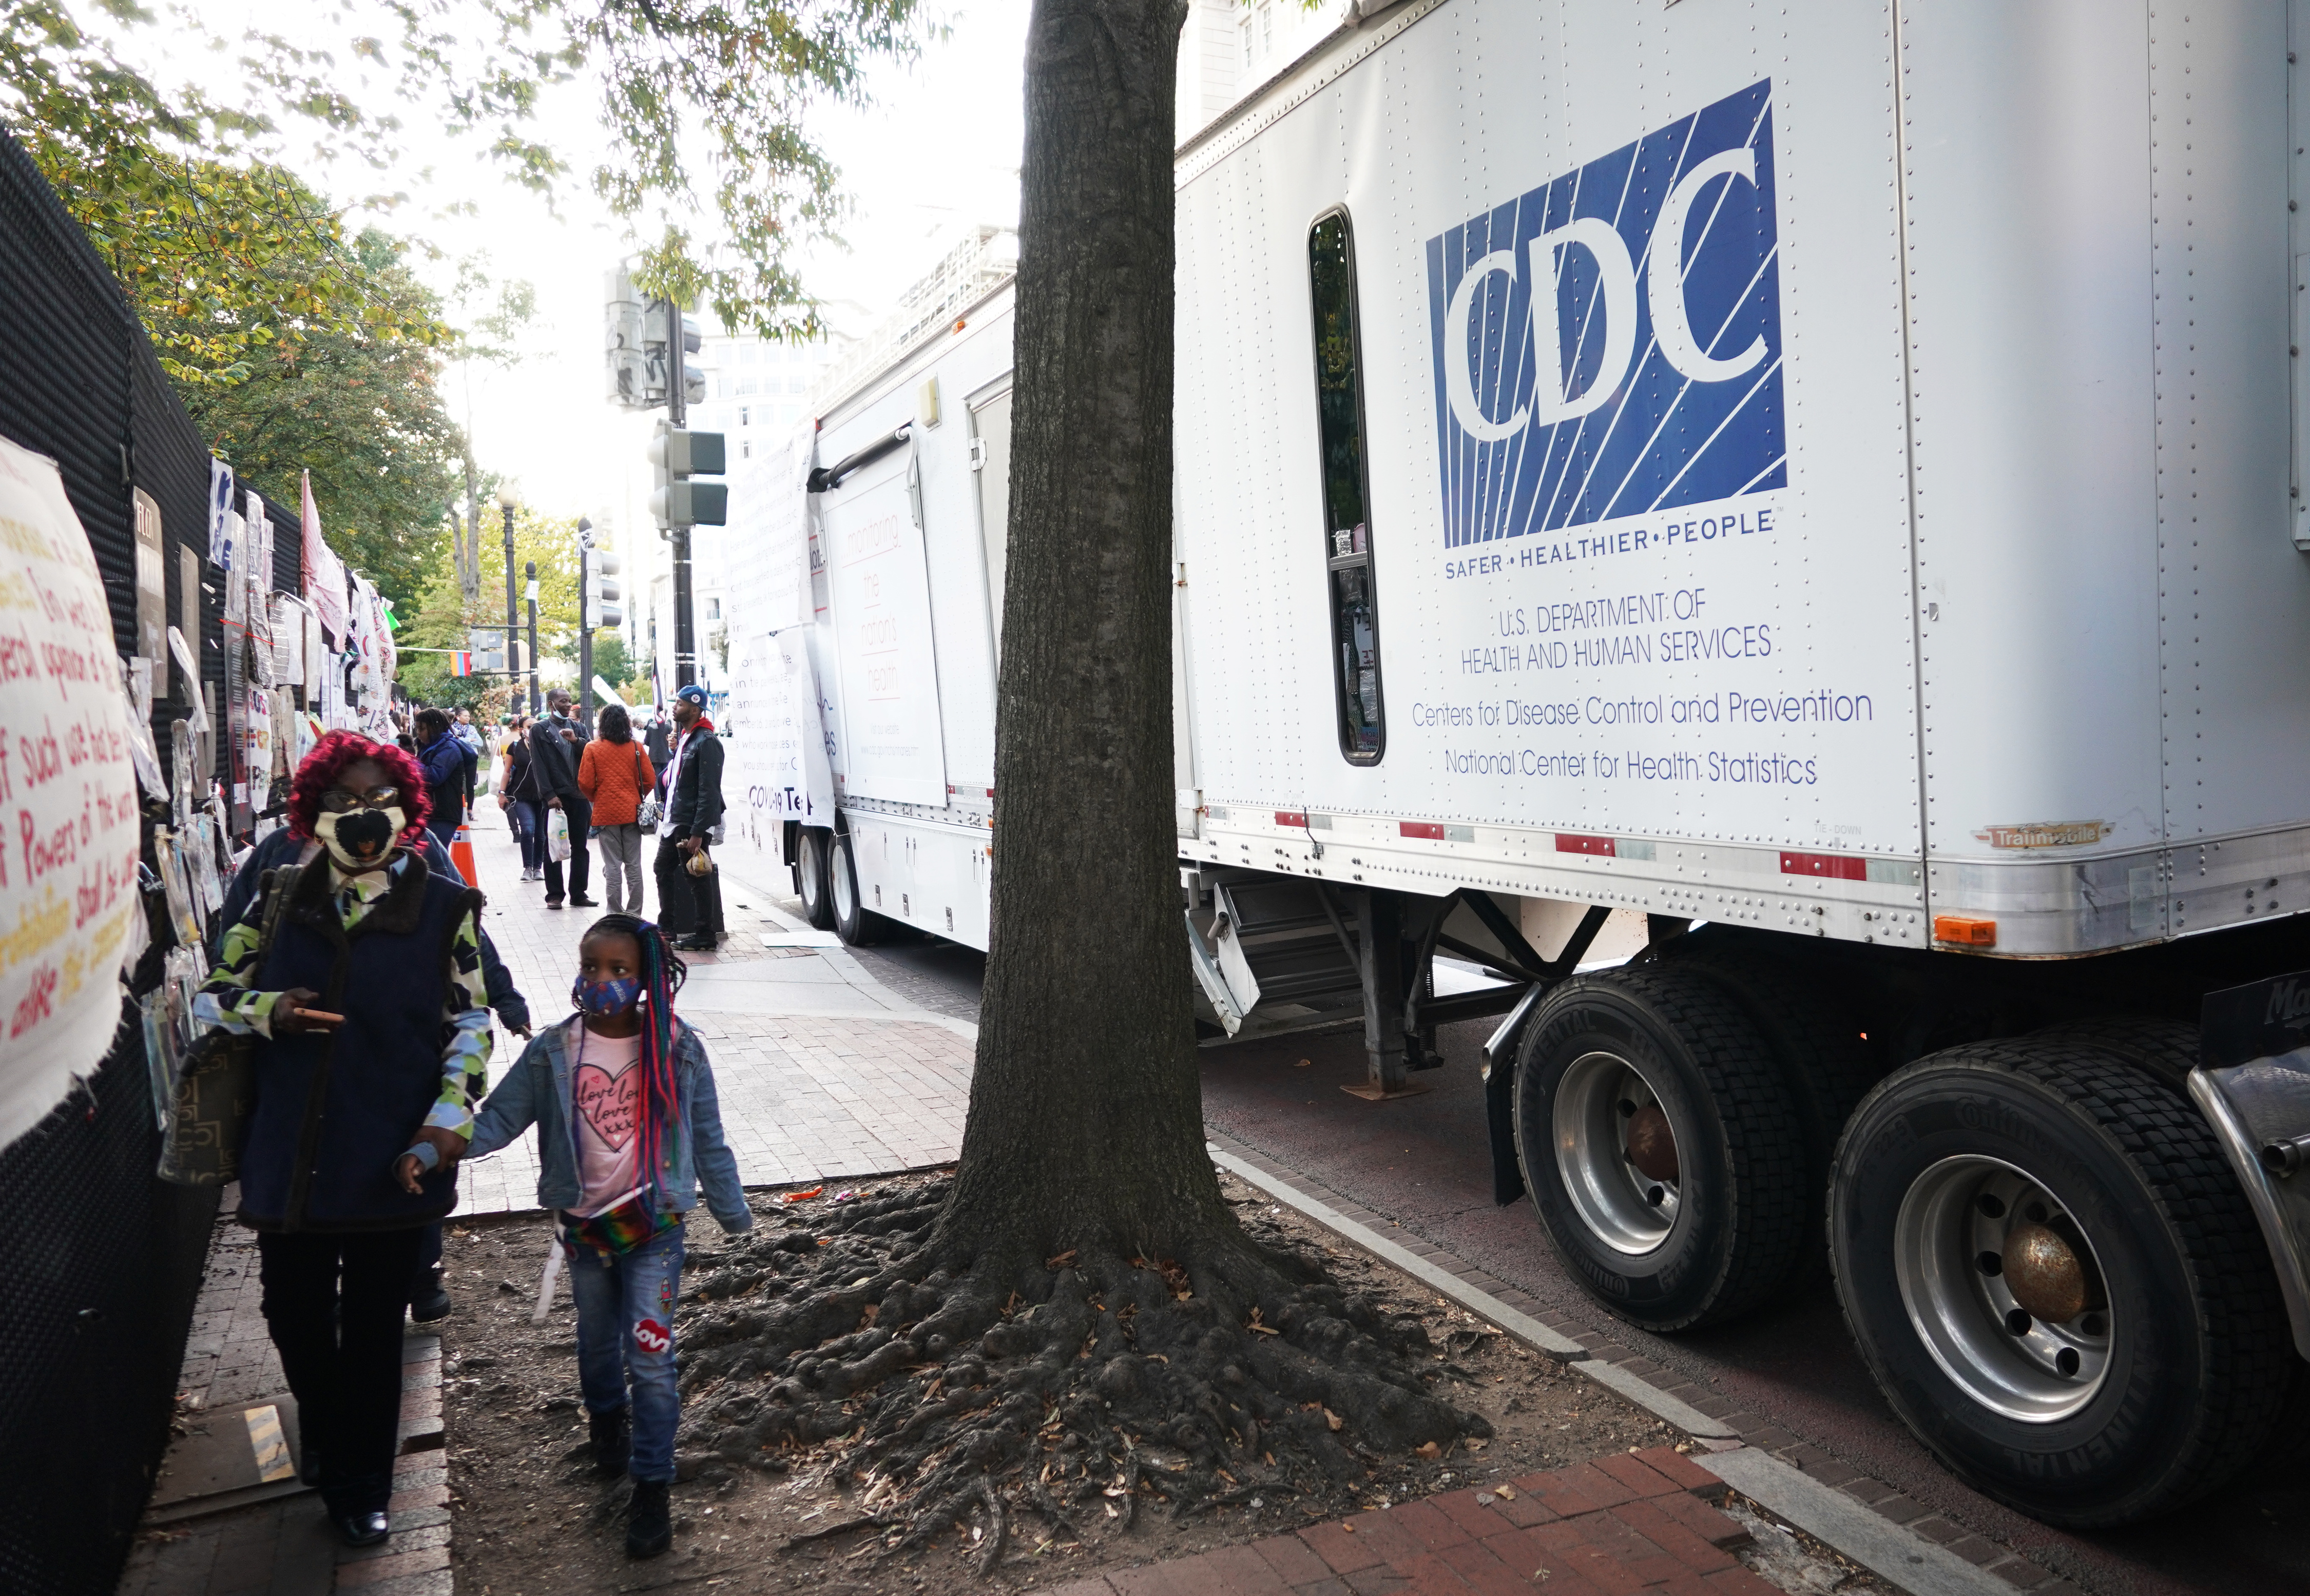 New COVID-19 variant found in Britain transmitted person-to-person in US: CDC